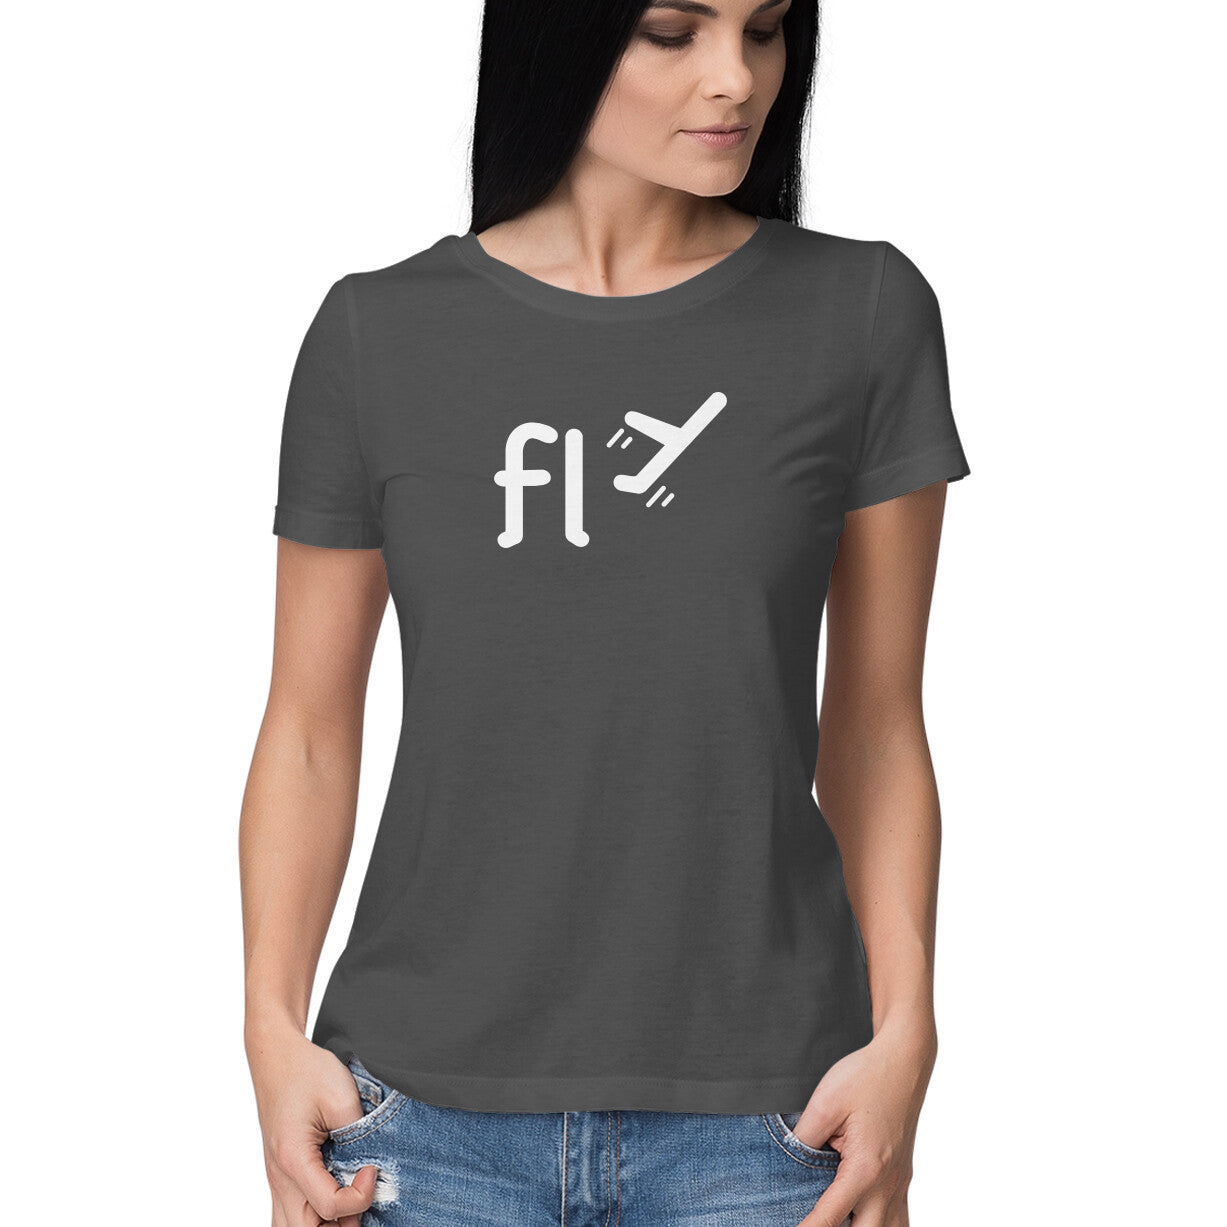 Fly- Women's T-shirts